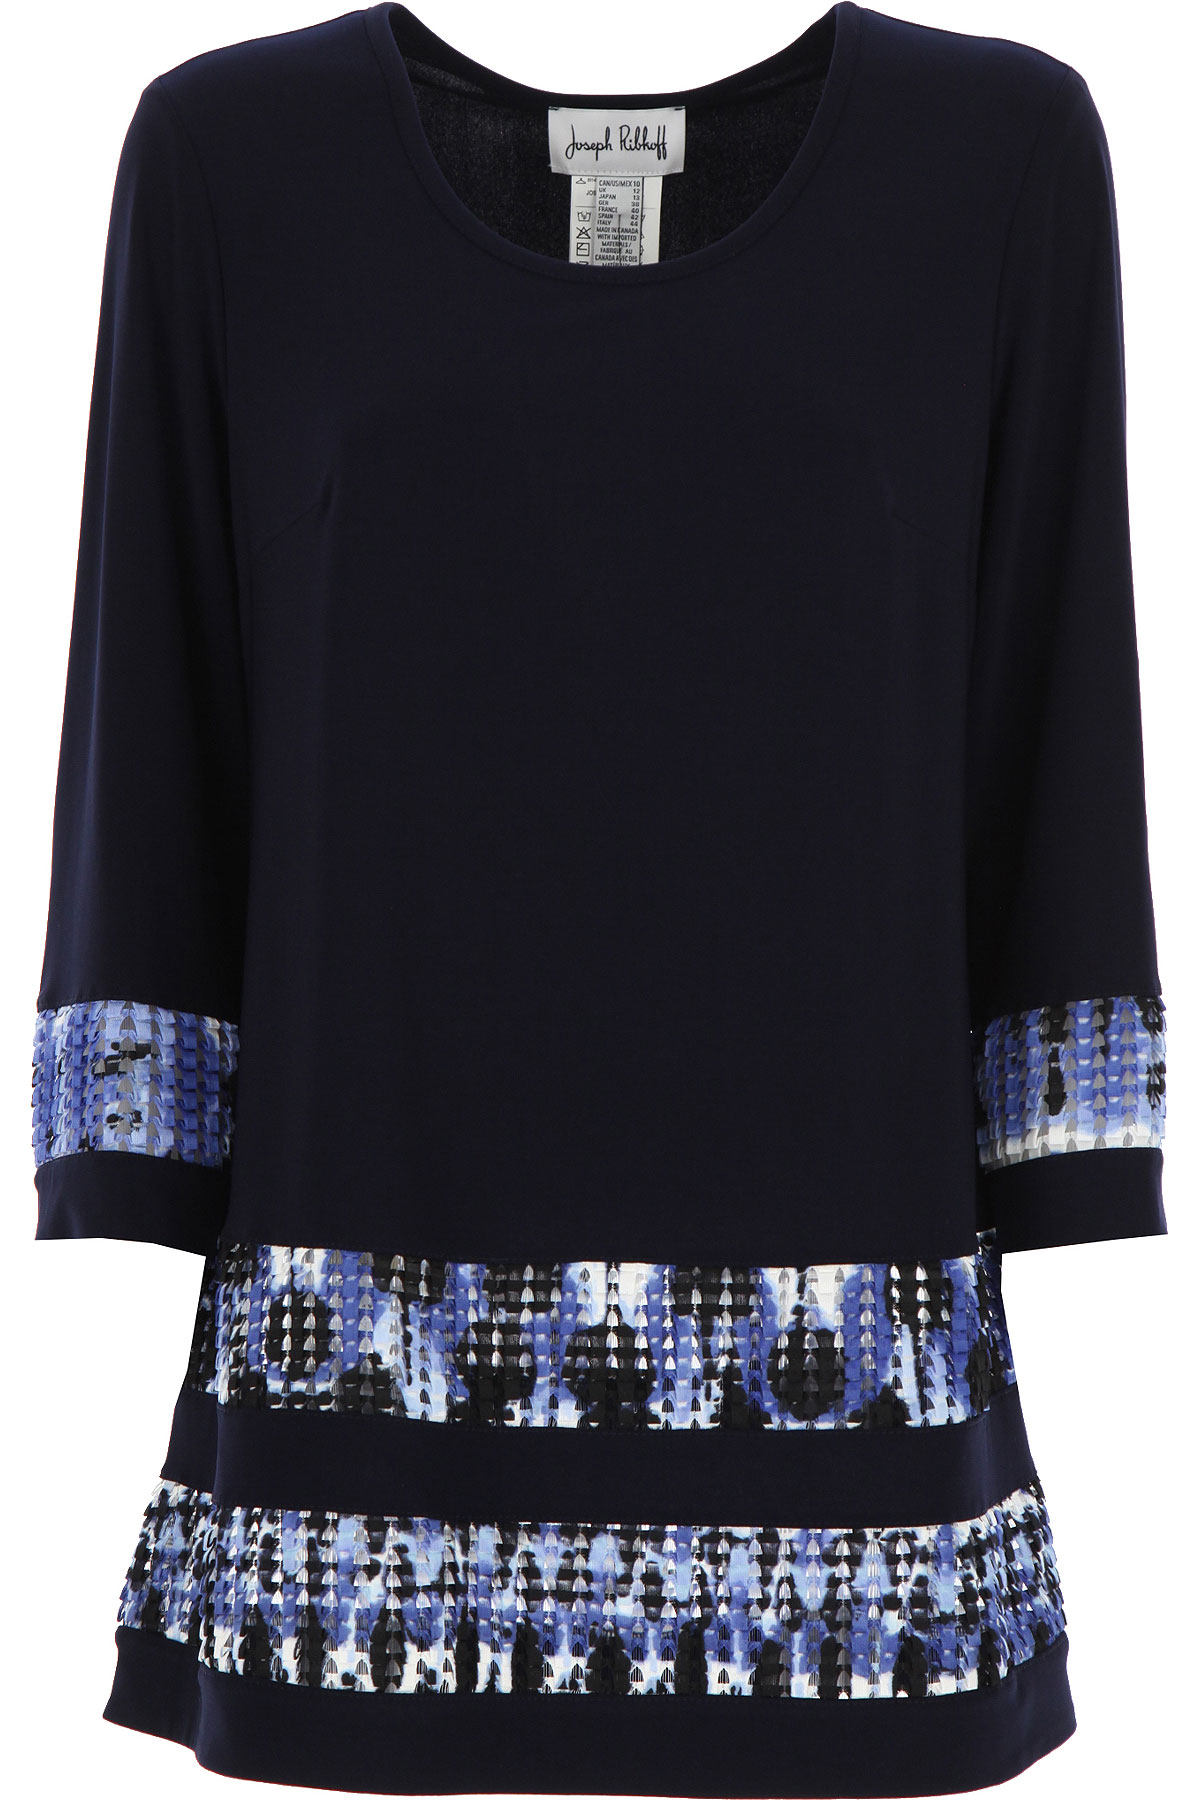 Joseph Ribkoff Top for Women On Sale, Midnight Blue, polyester, 2019, 10 12 14 8